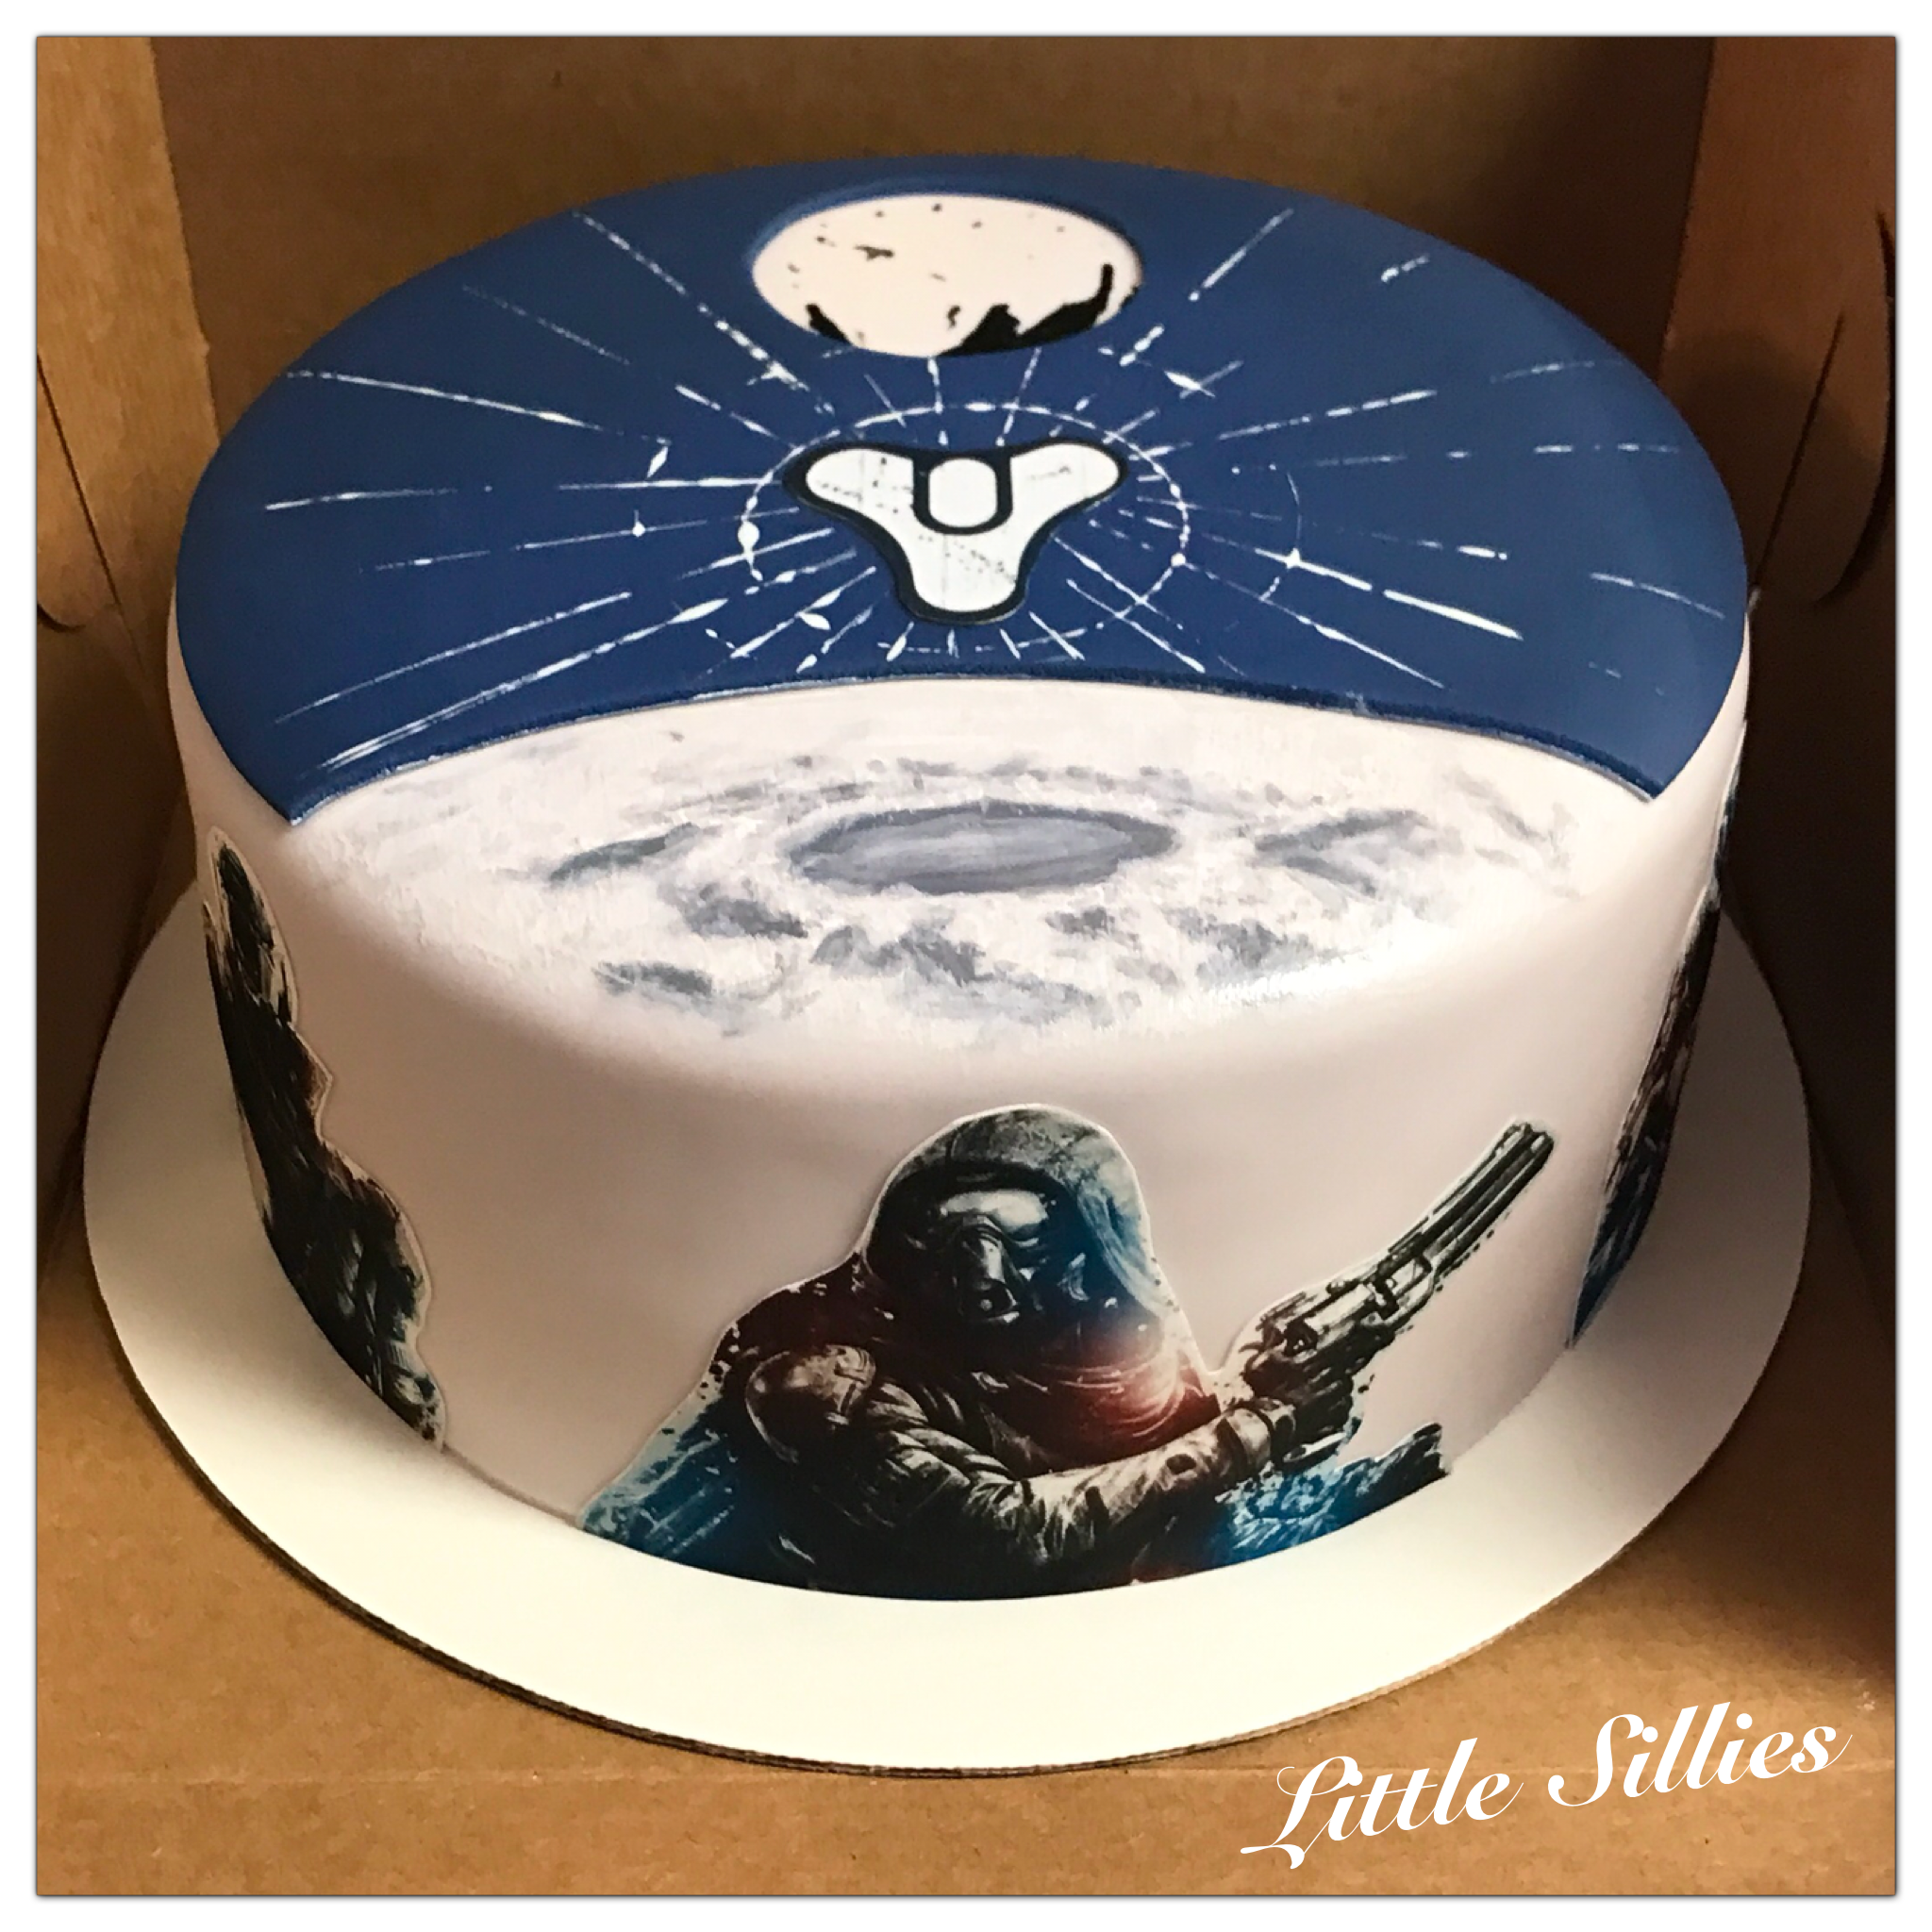 A Destiny (video game) themed cake Video game cakes